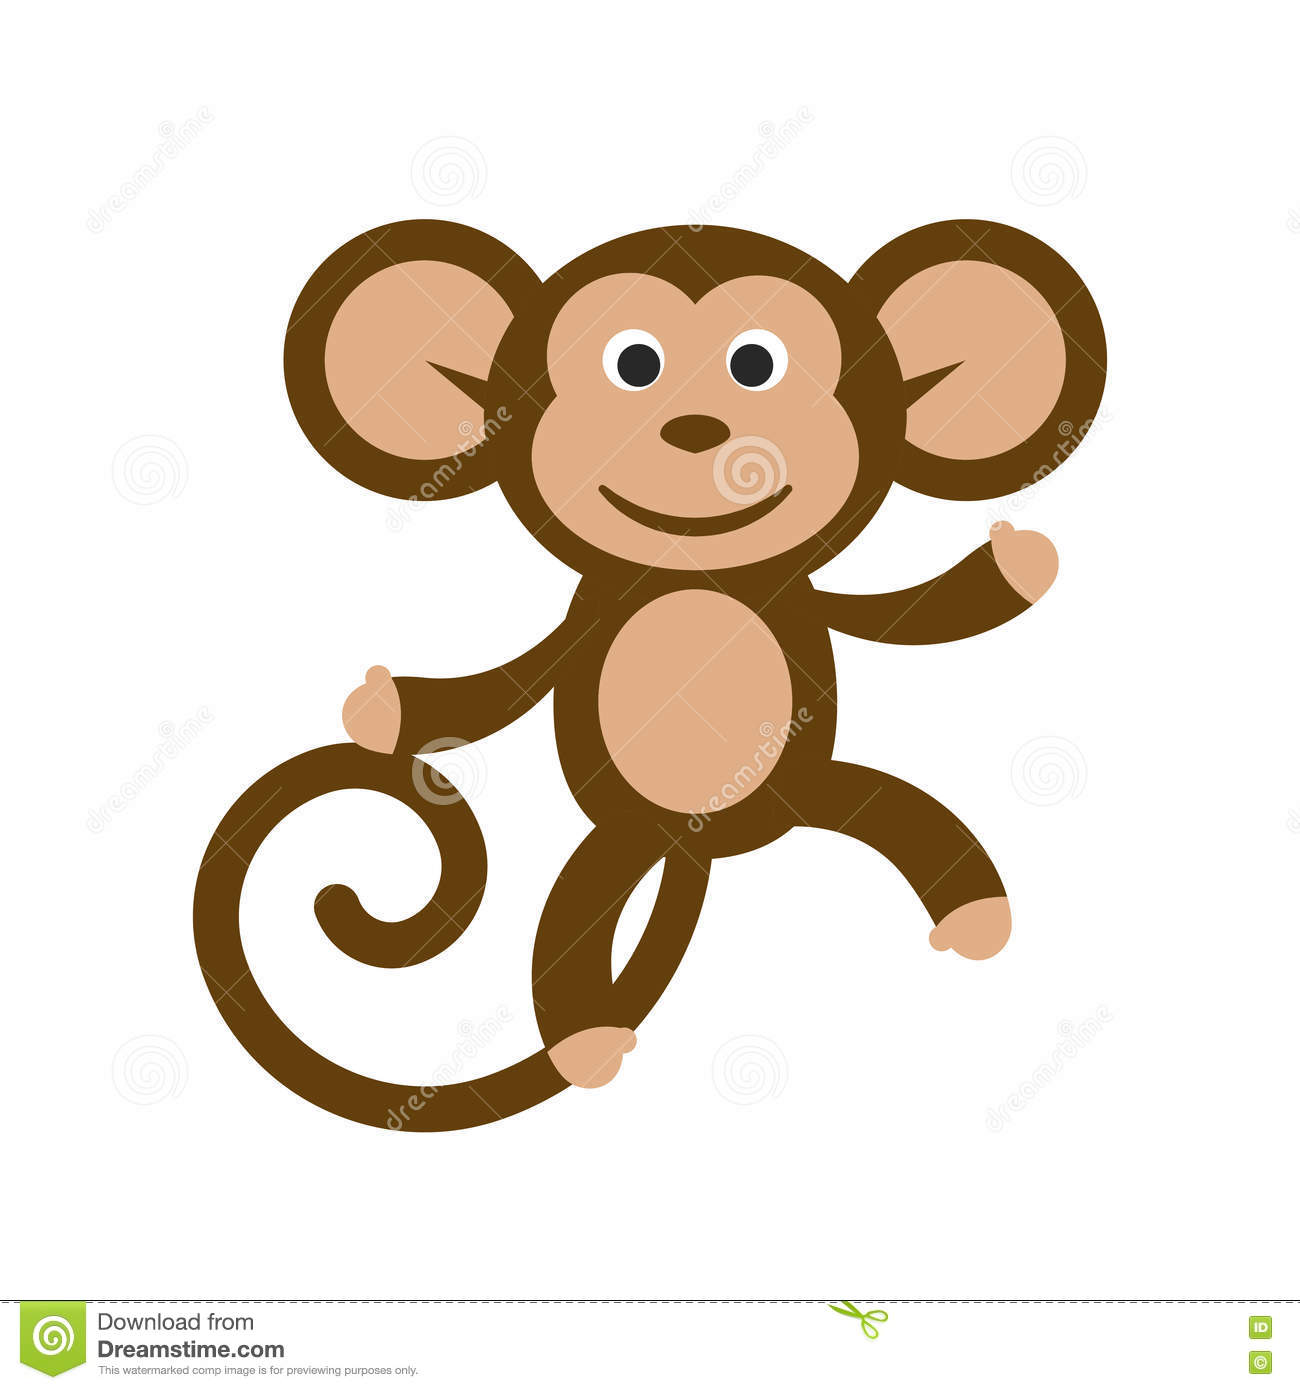 Happy Cartoon Monkey Illustration. Stock Vector.